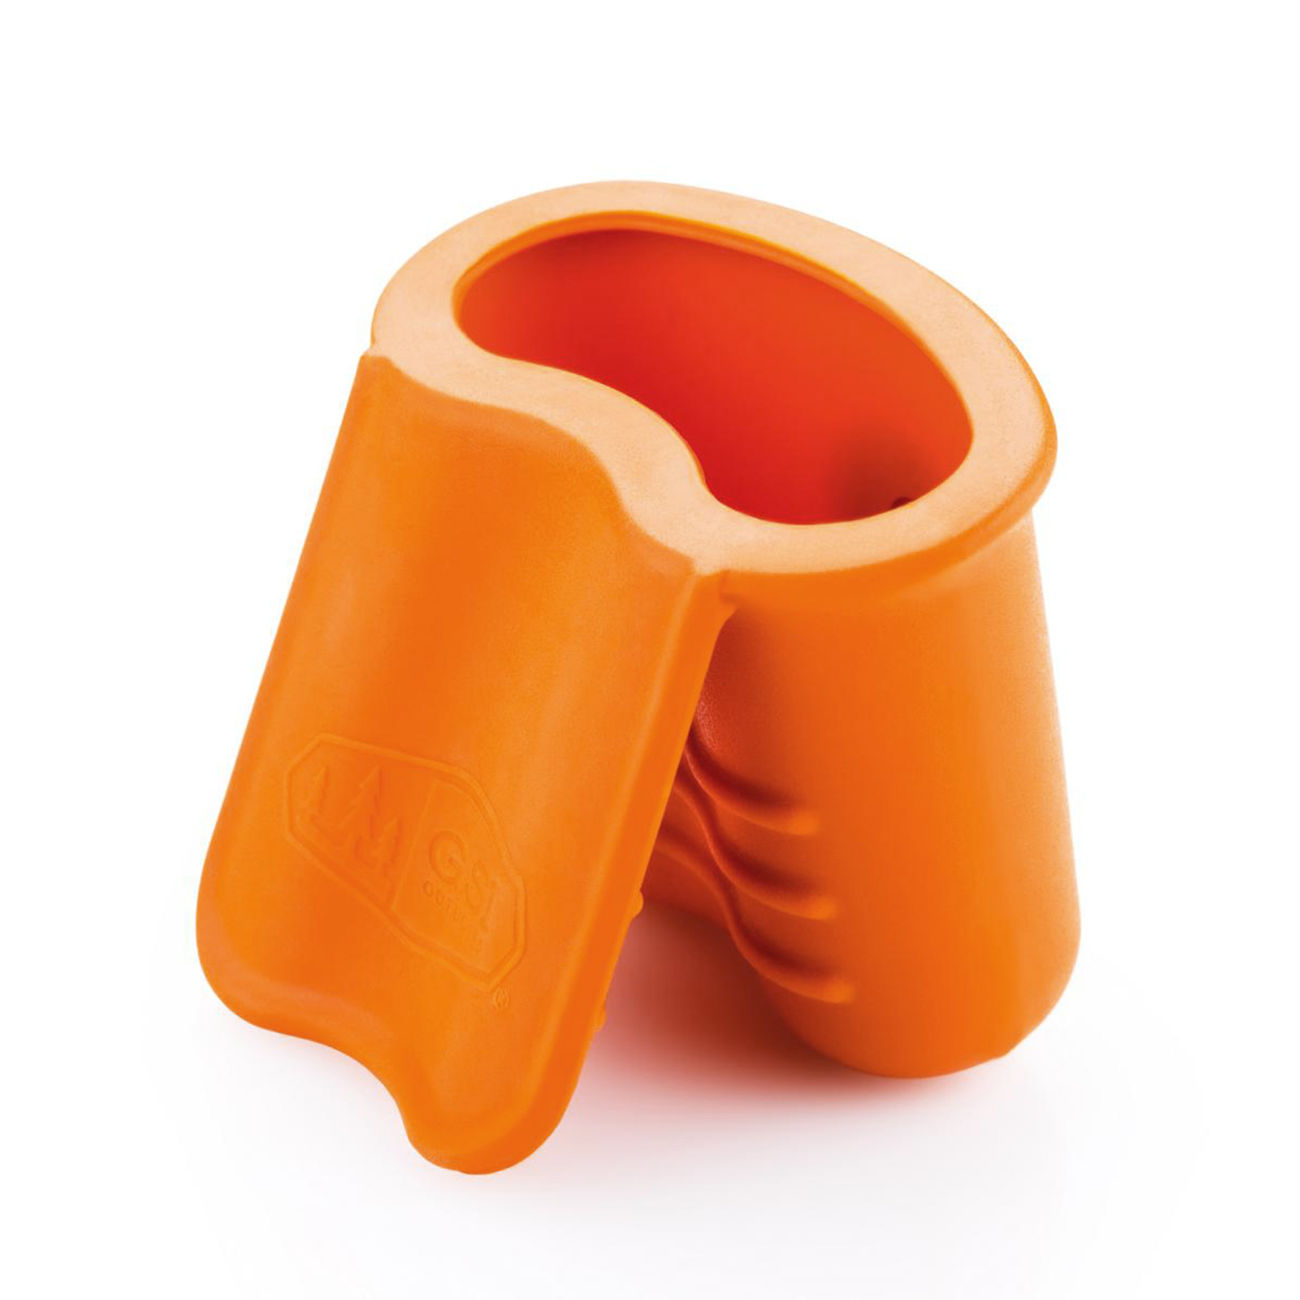 GSI Outdoors Griffzange Microgripper orange 2